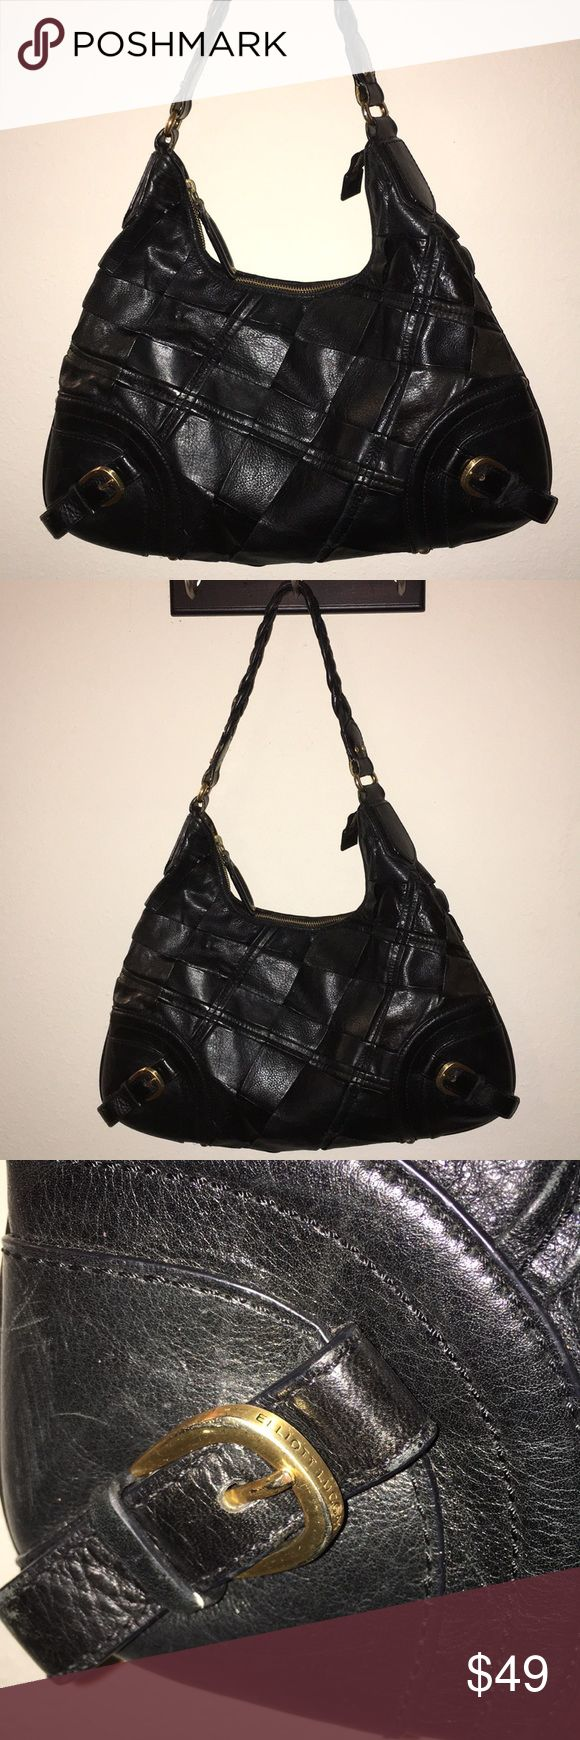 """ELLIOTT LUCCA Black Leather Hobo shoulder Bag This is a ELLIOTT LUCCA Black Leather Hobo shoulder Bag purse with a braided strap! Clean inside and out! Measures 16""""x10"""", I ship fast! Happy poshing friends! Elliott Lucca Bags Shoulder Bags"""